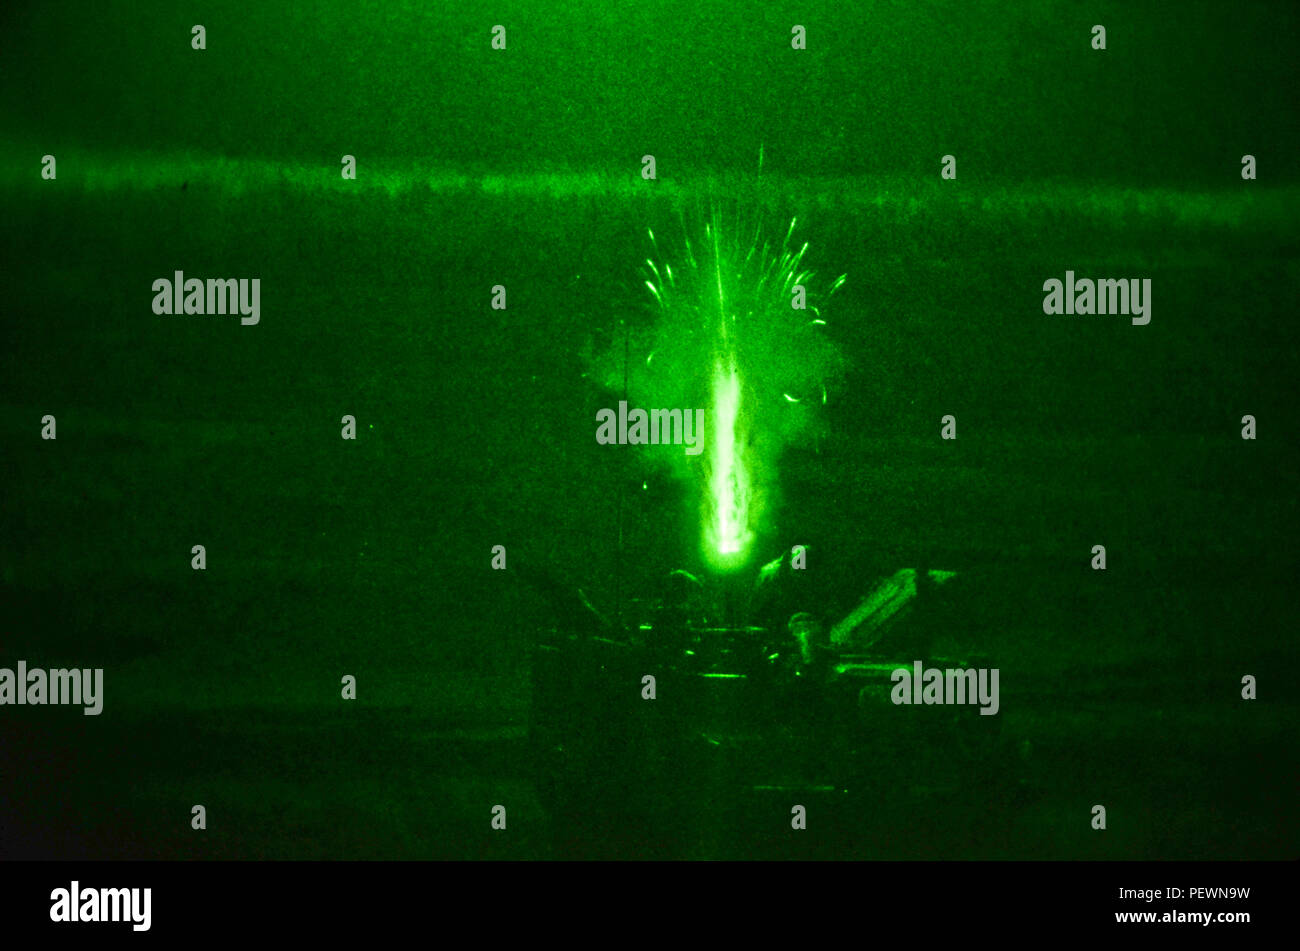 Soldiers of 3rd Squadaron, 2nd Cavalry Regiment, stationed out of Vilseck, Germany, fire a 120mm illumination round out of an M1129 Mortar Carrier Vehicle during a night training exercise at Adazi Training Area in Latvia, Feb. 3, 2016. (Photo by U.S. Army Staff Sgt. Steven M. Colvin/Released) - Stock Image